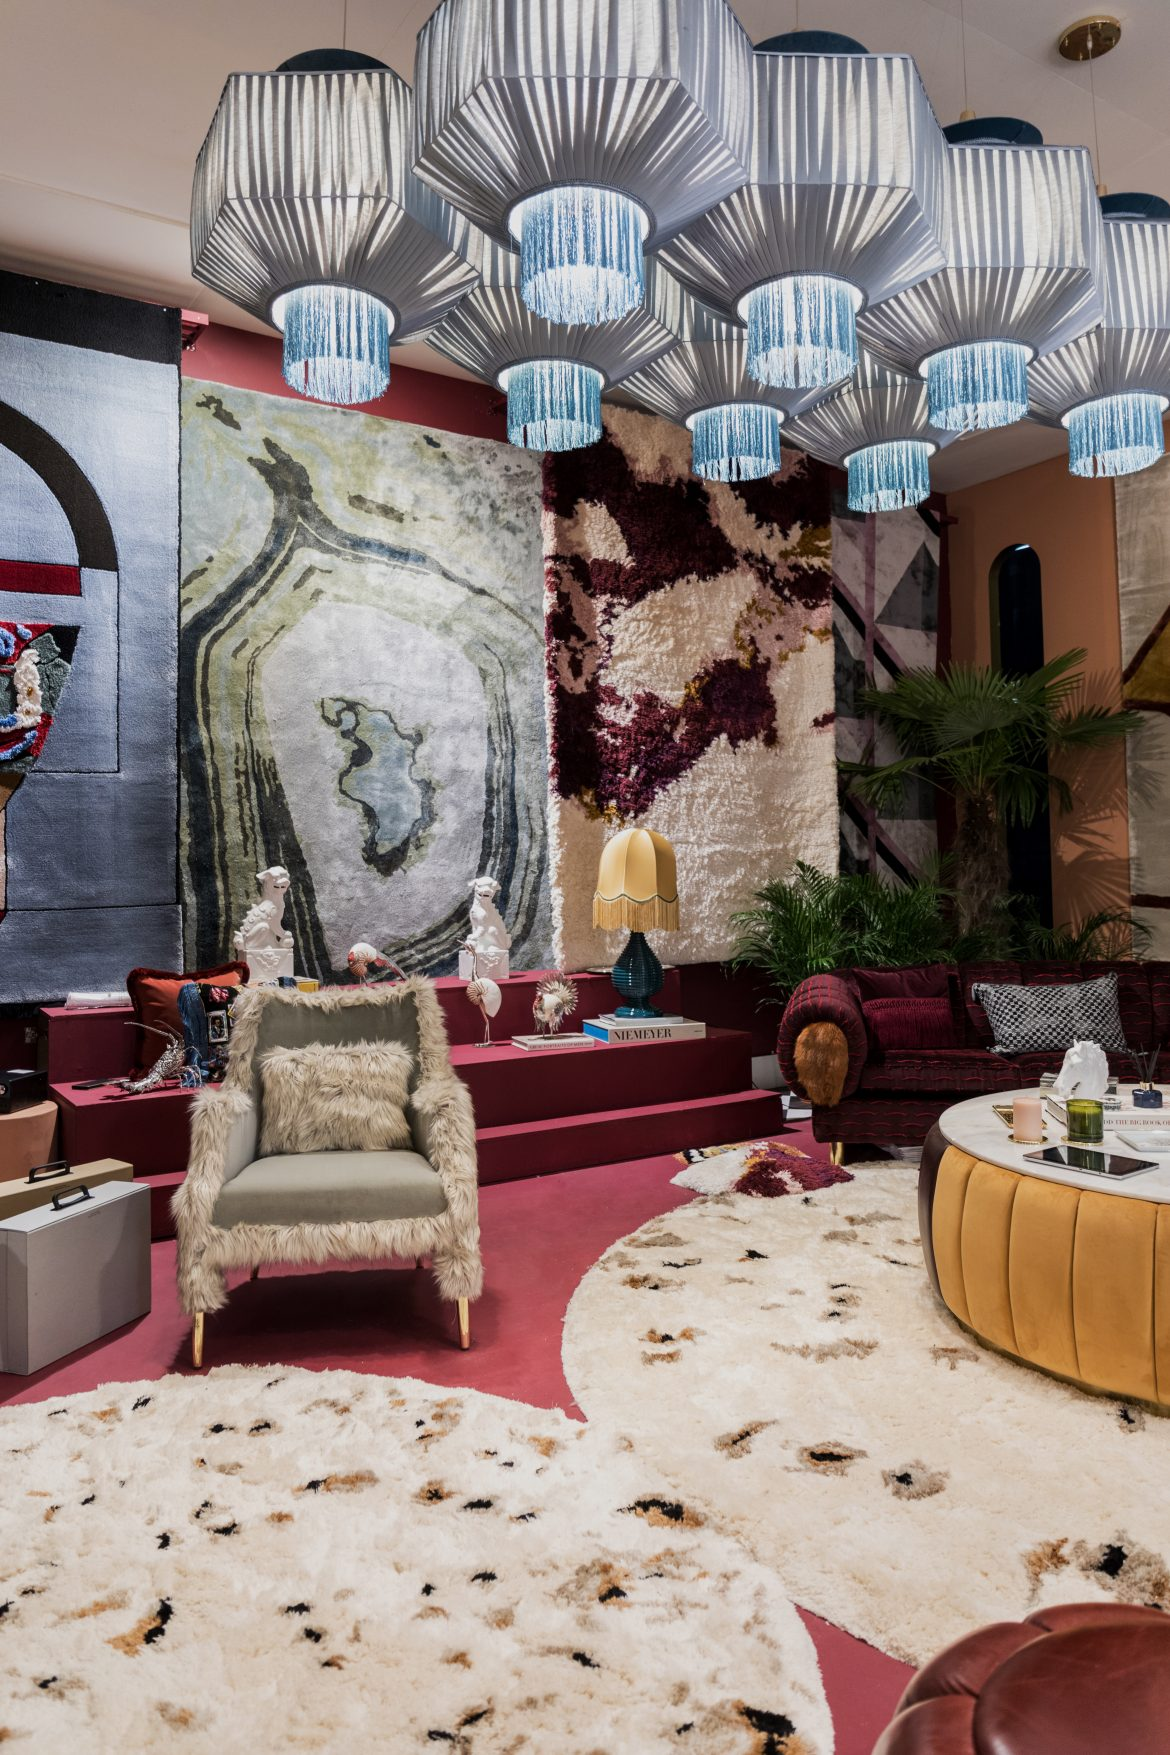 isaloni The Ultimate Guide For ISaloni & Milan Design Week 2019 The Ultimate Guide For ISaloni Milan Design Week 2019 14